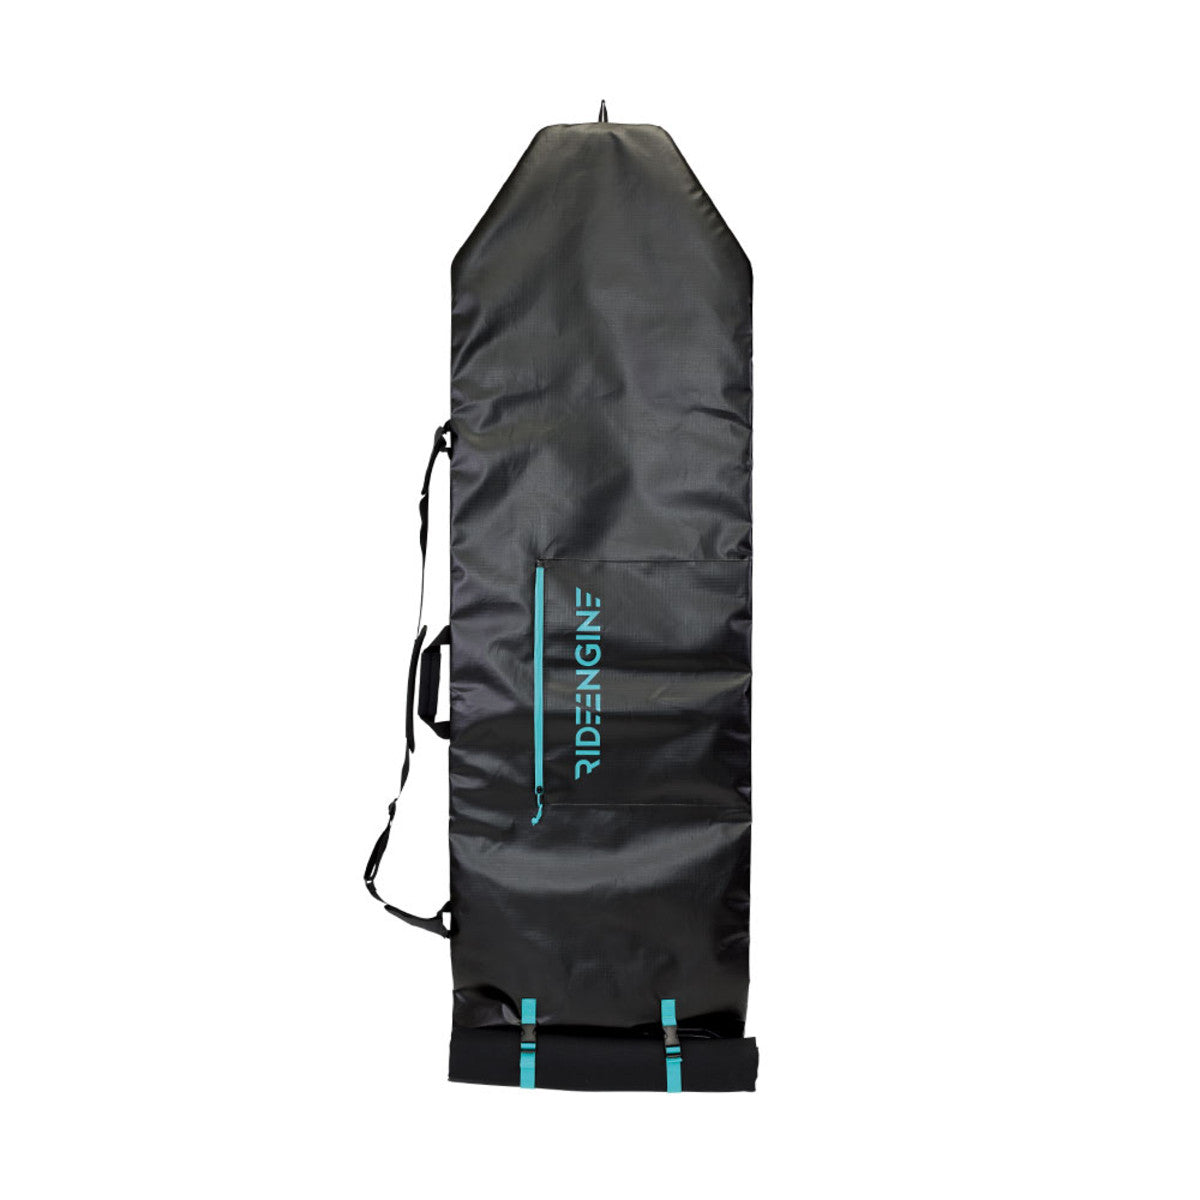 Ranger Surf Board Bag